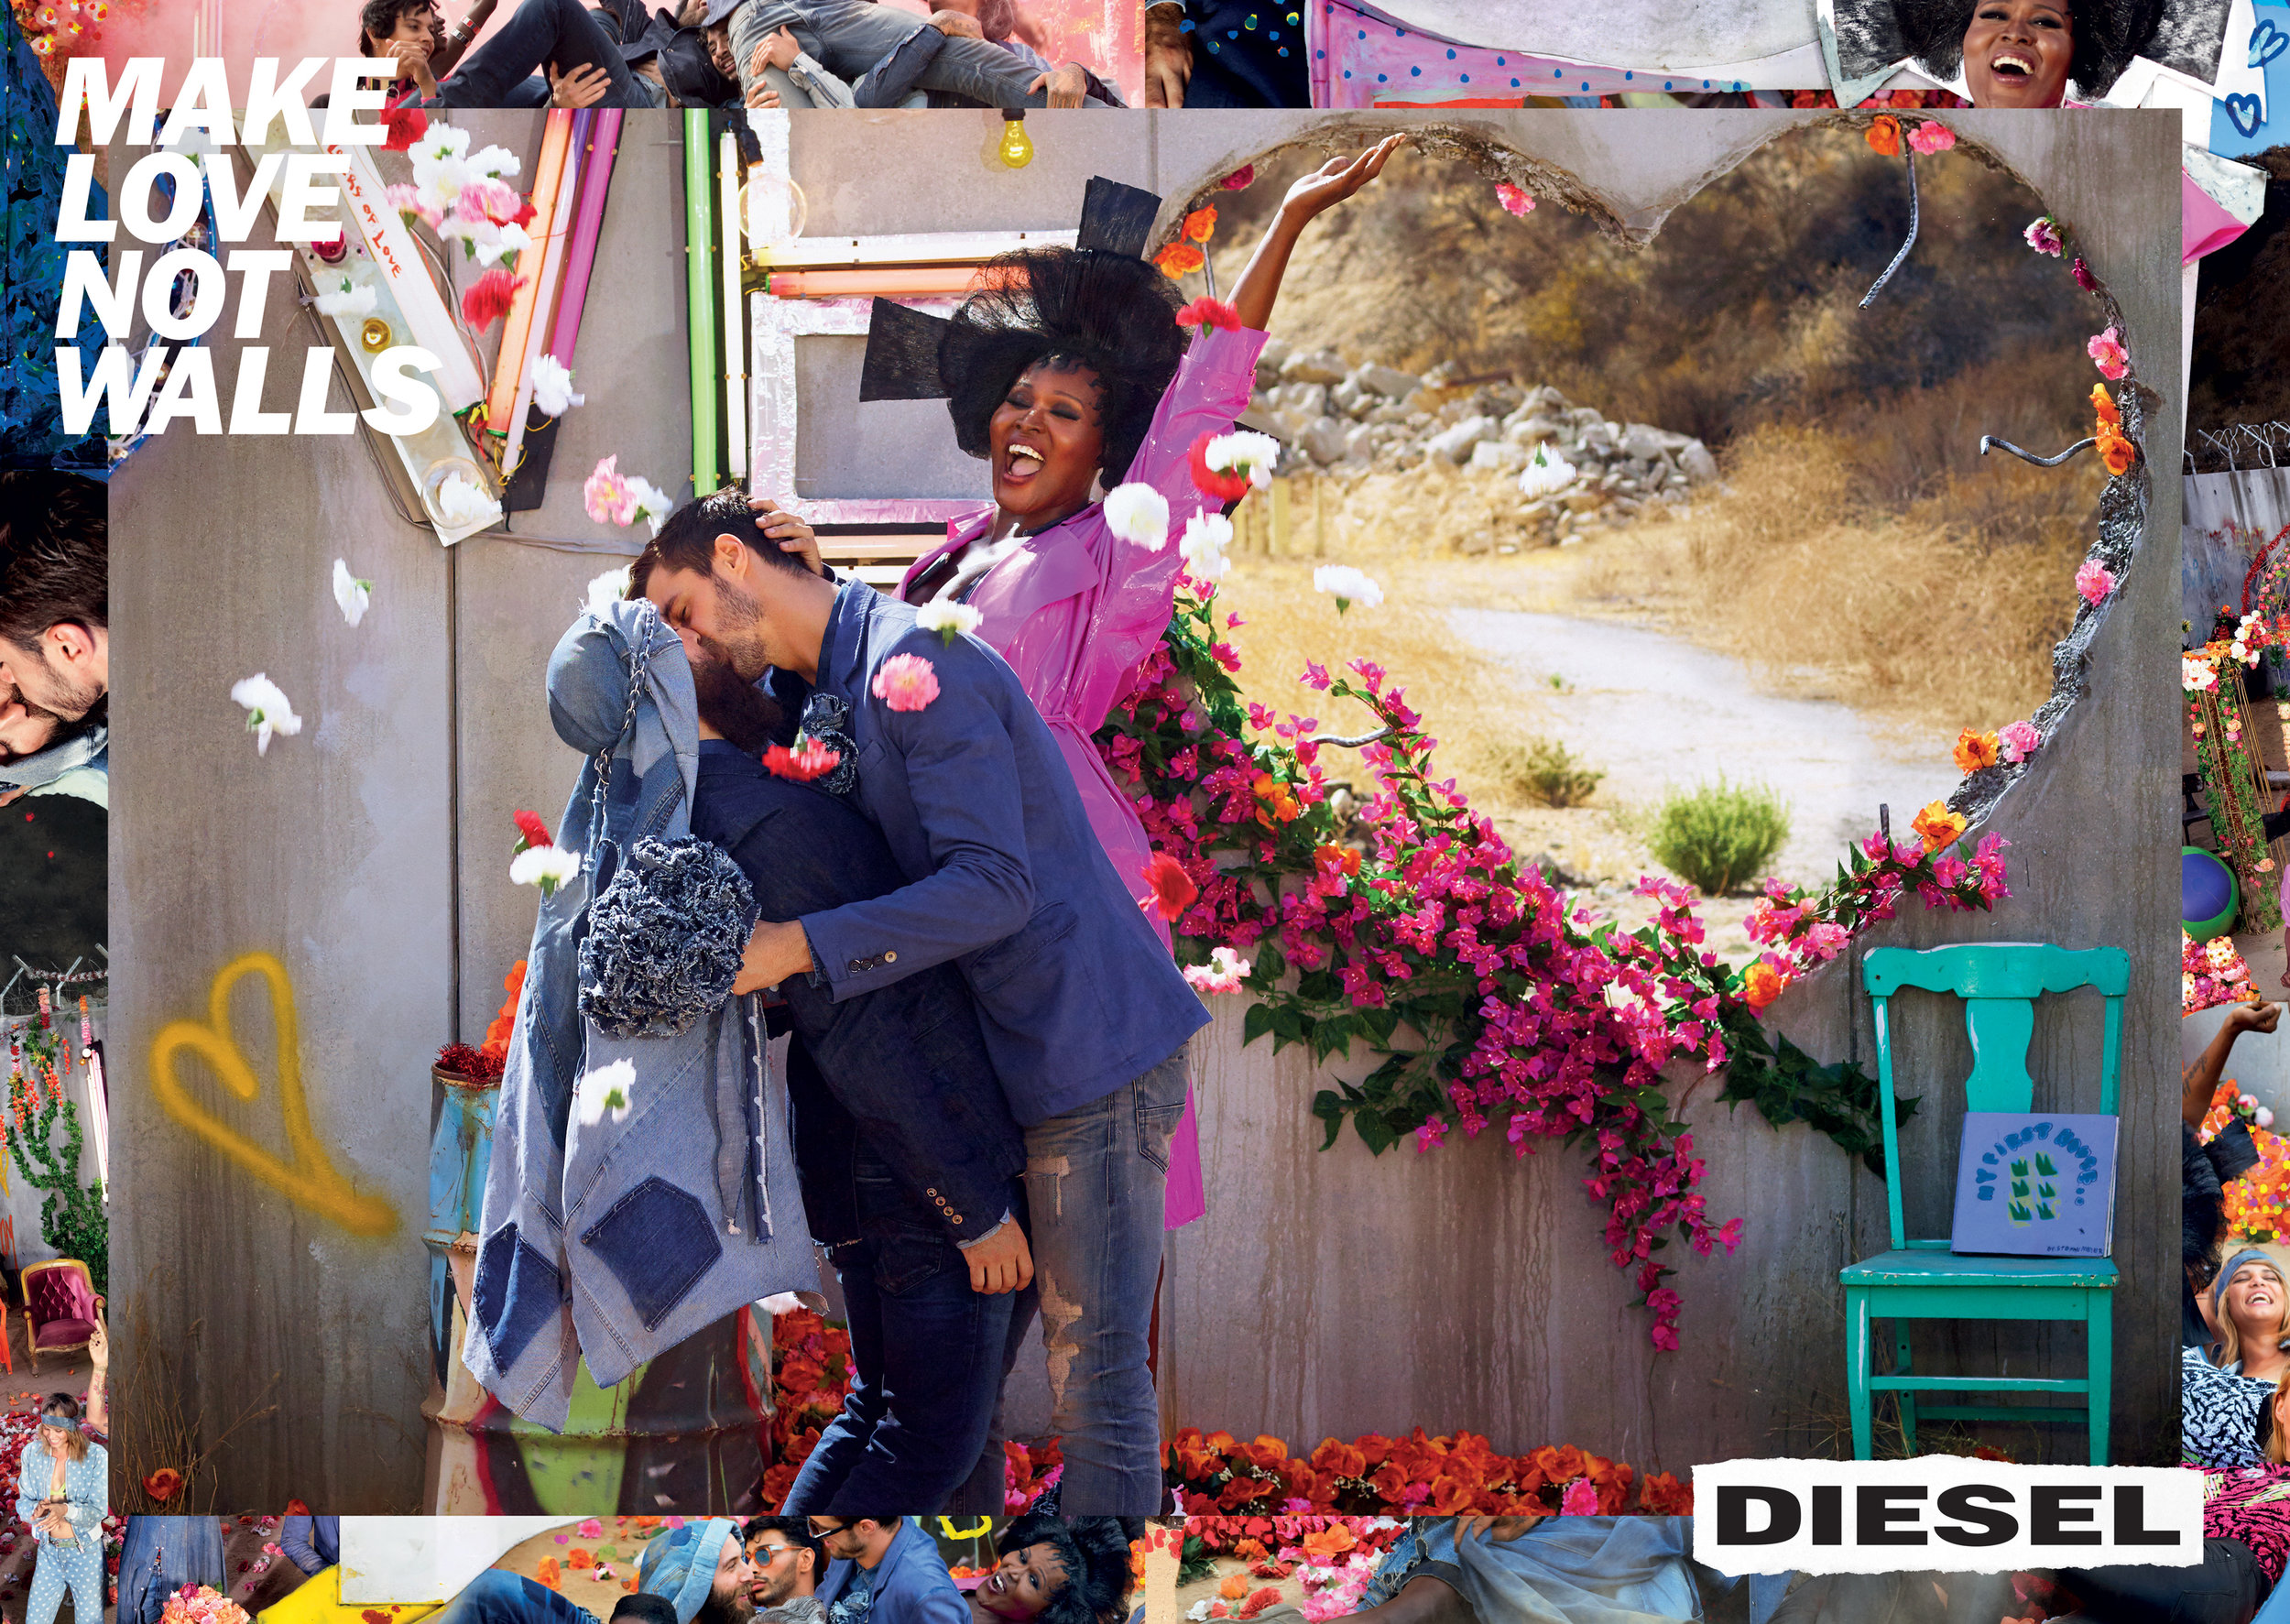 Diesel_Cannes_A2_Billboard-3.jpg